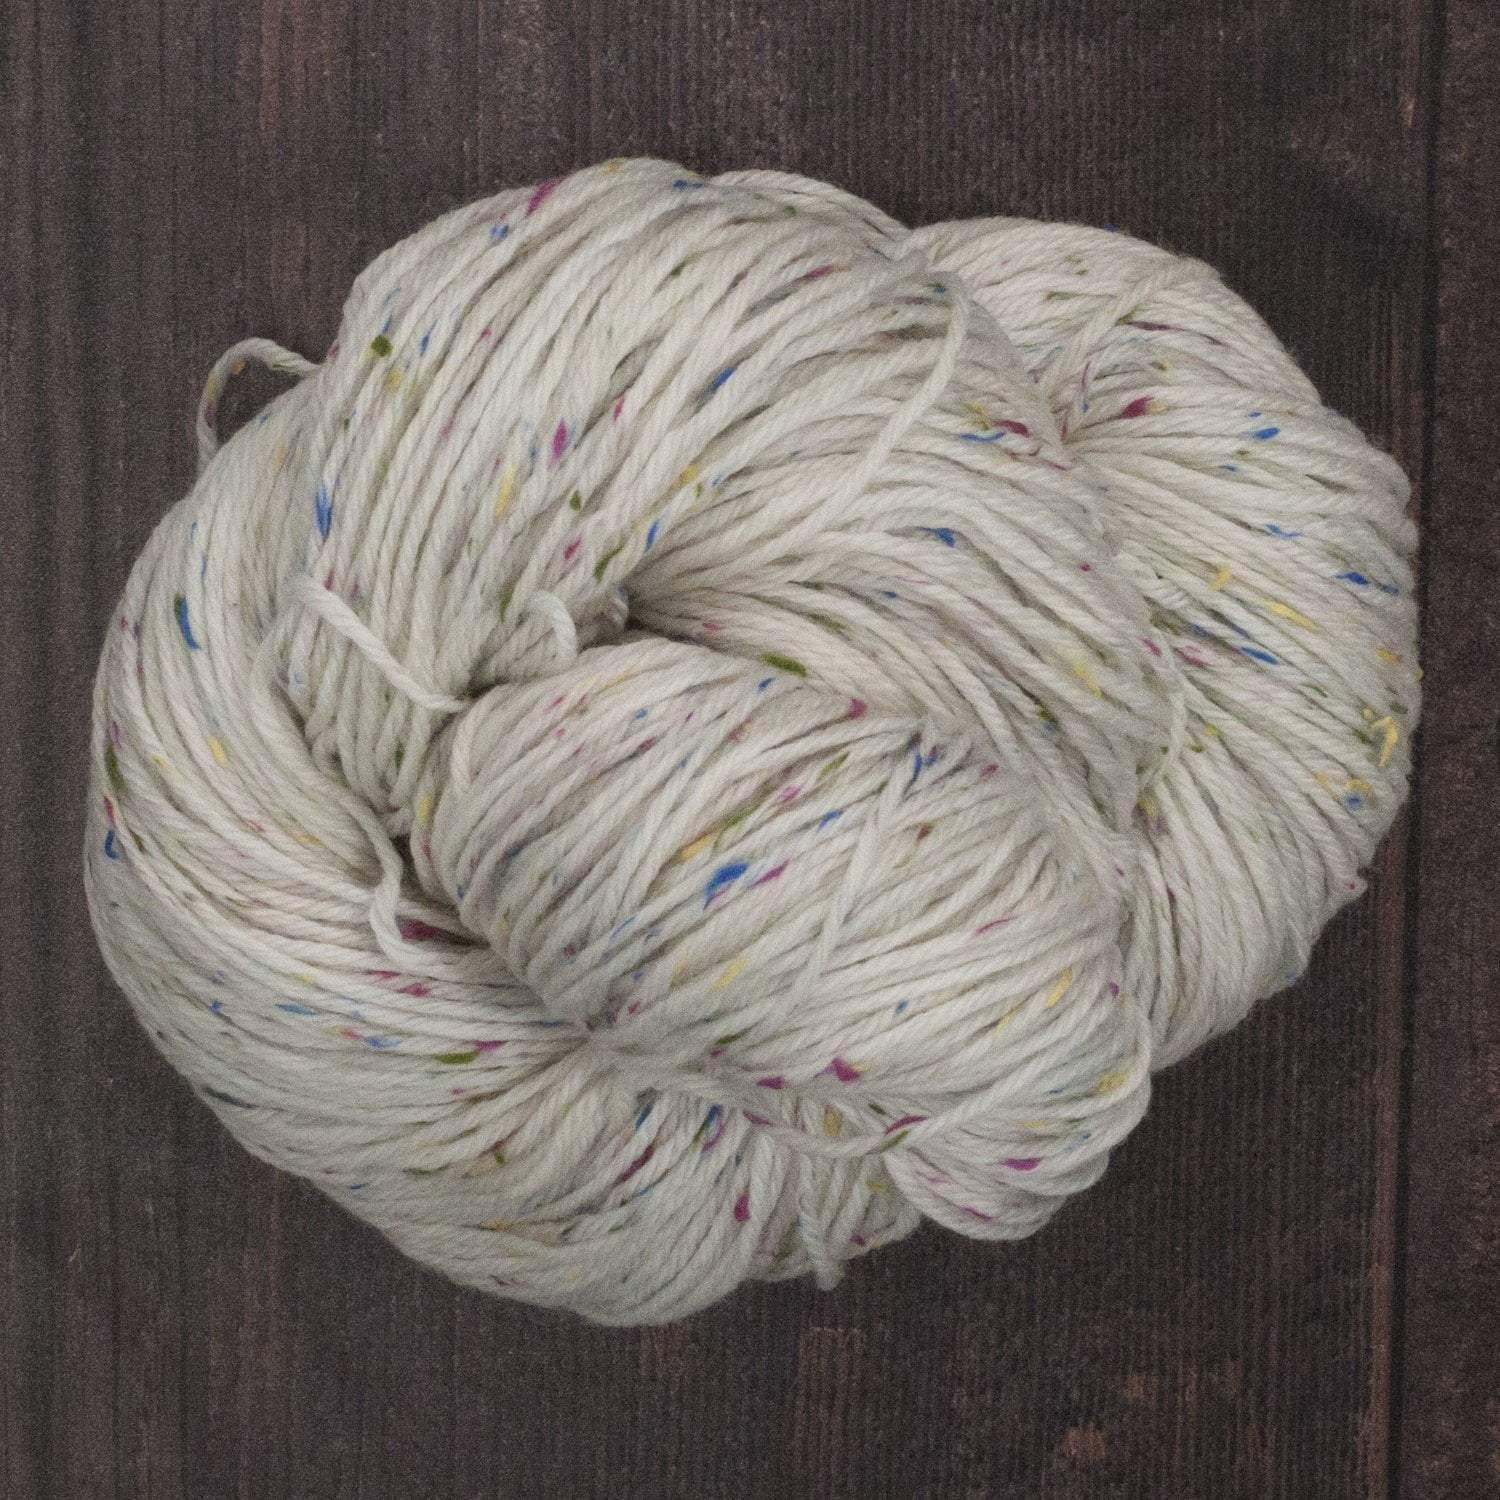 Merino Donegal Multi-Coloured DK - Undyed Undyed Yarn